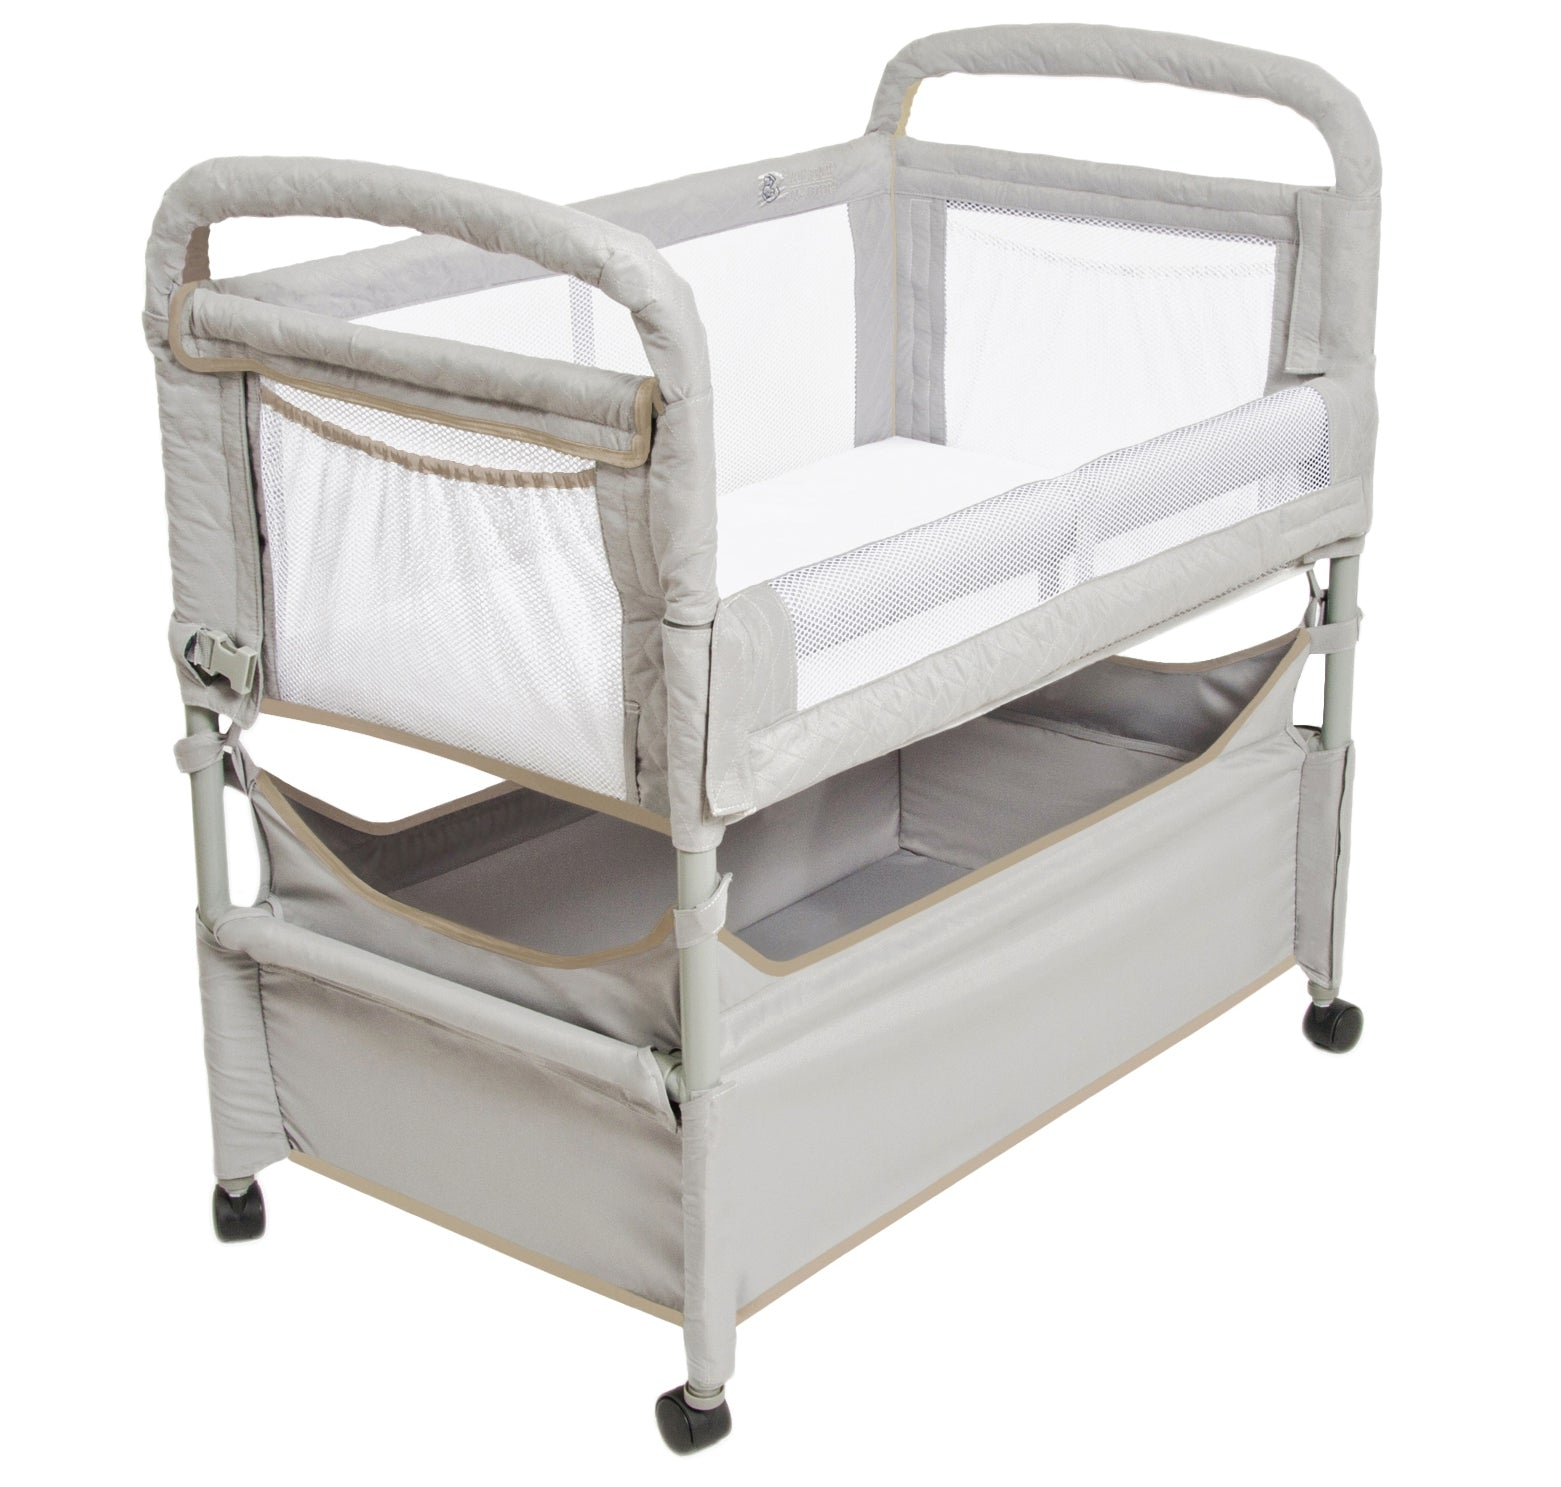 CLEAR-VUE CO-SLEEPER